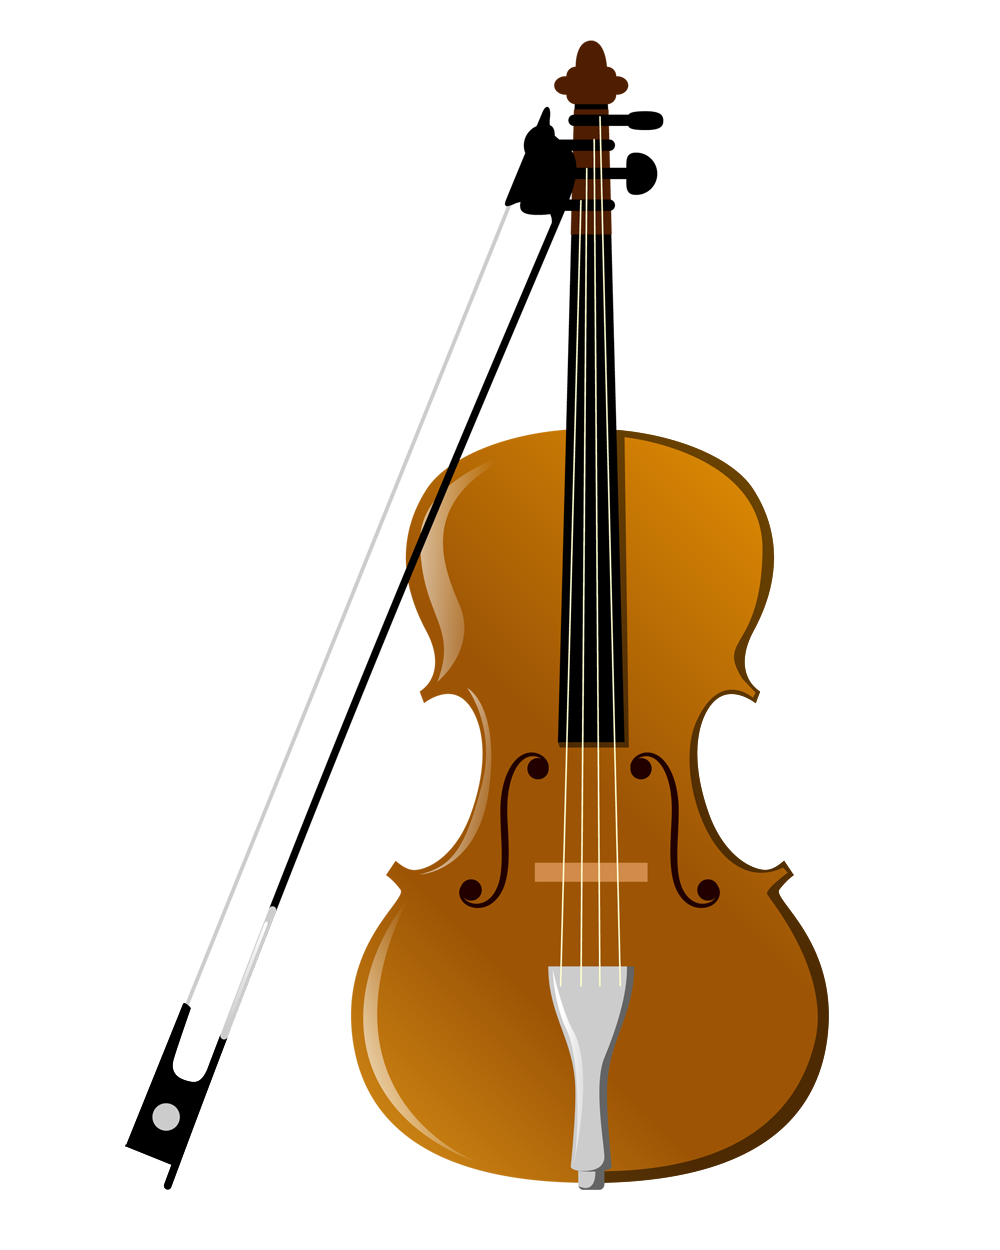 Violin musical instrument cartoon. Fiddle drawing banner royalty free download